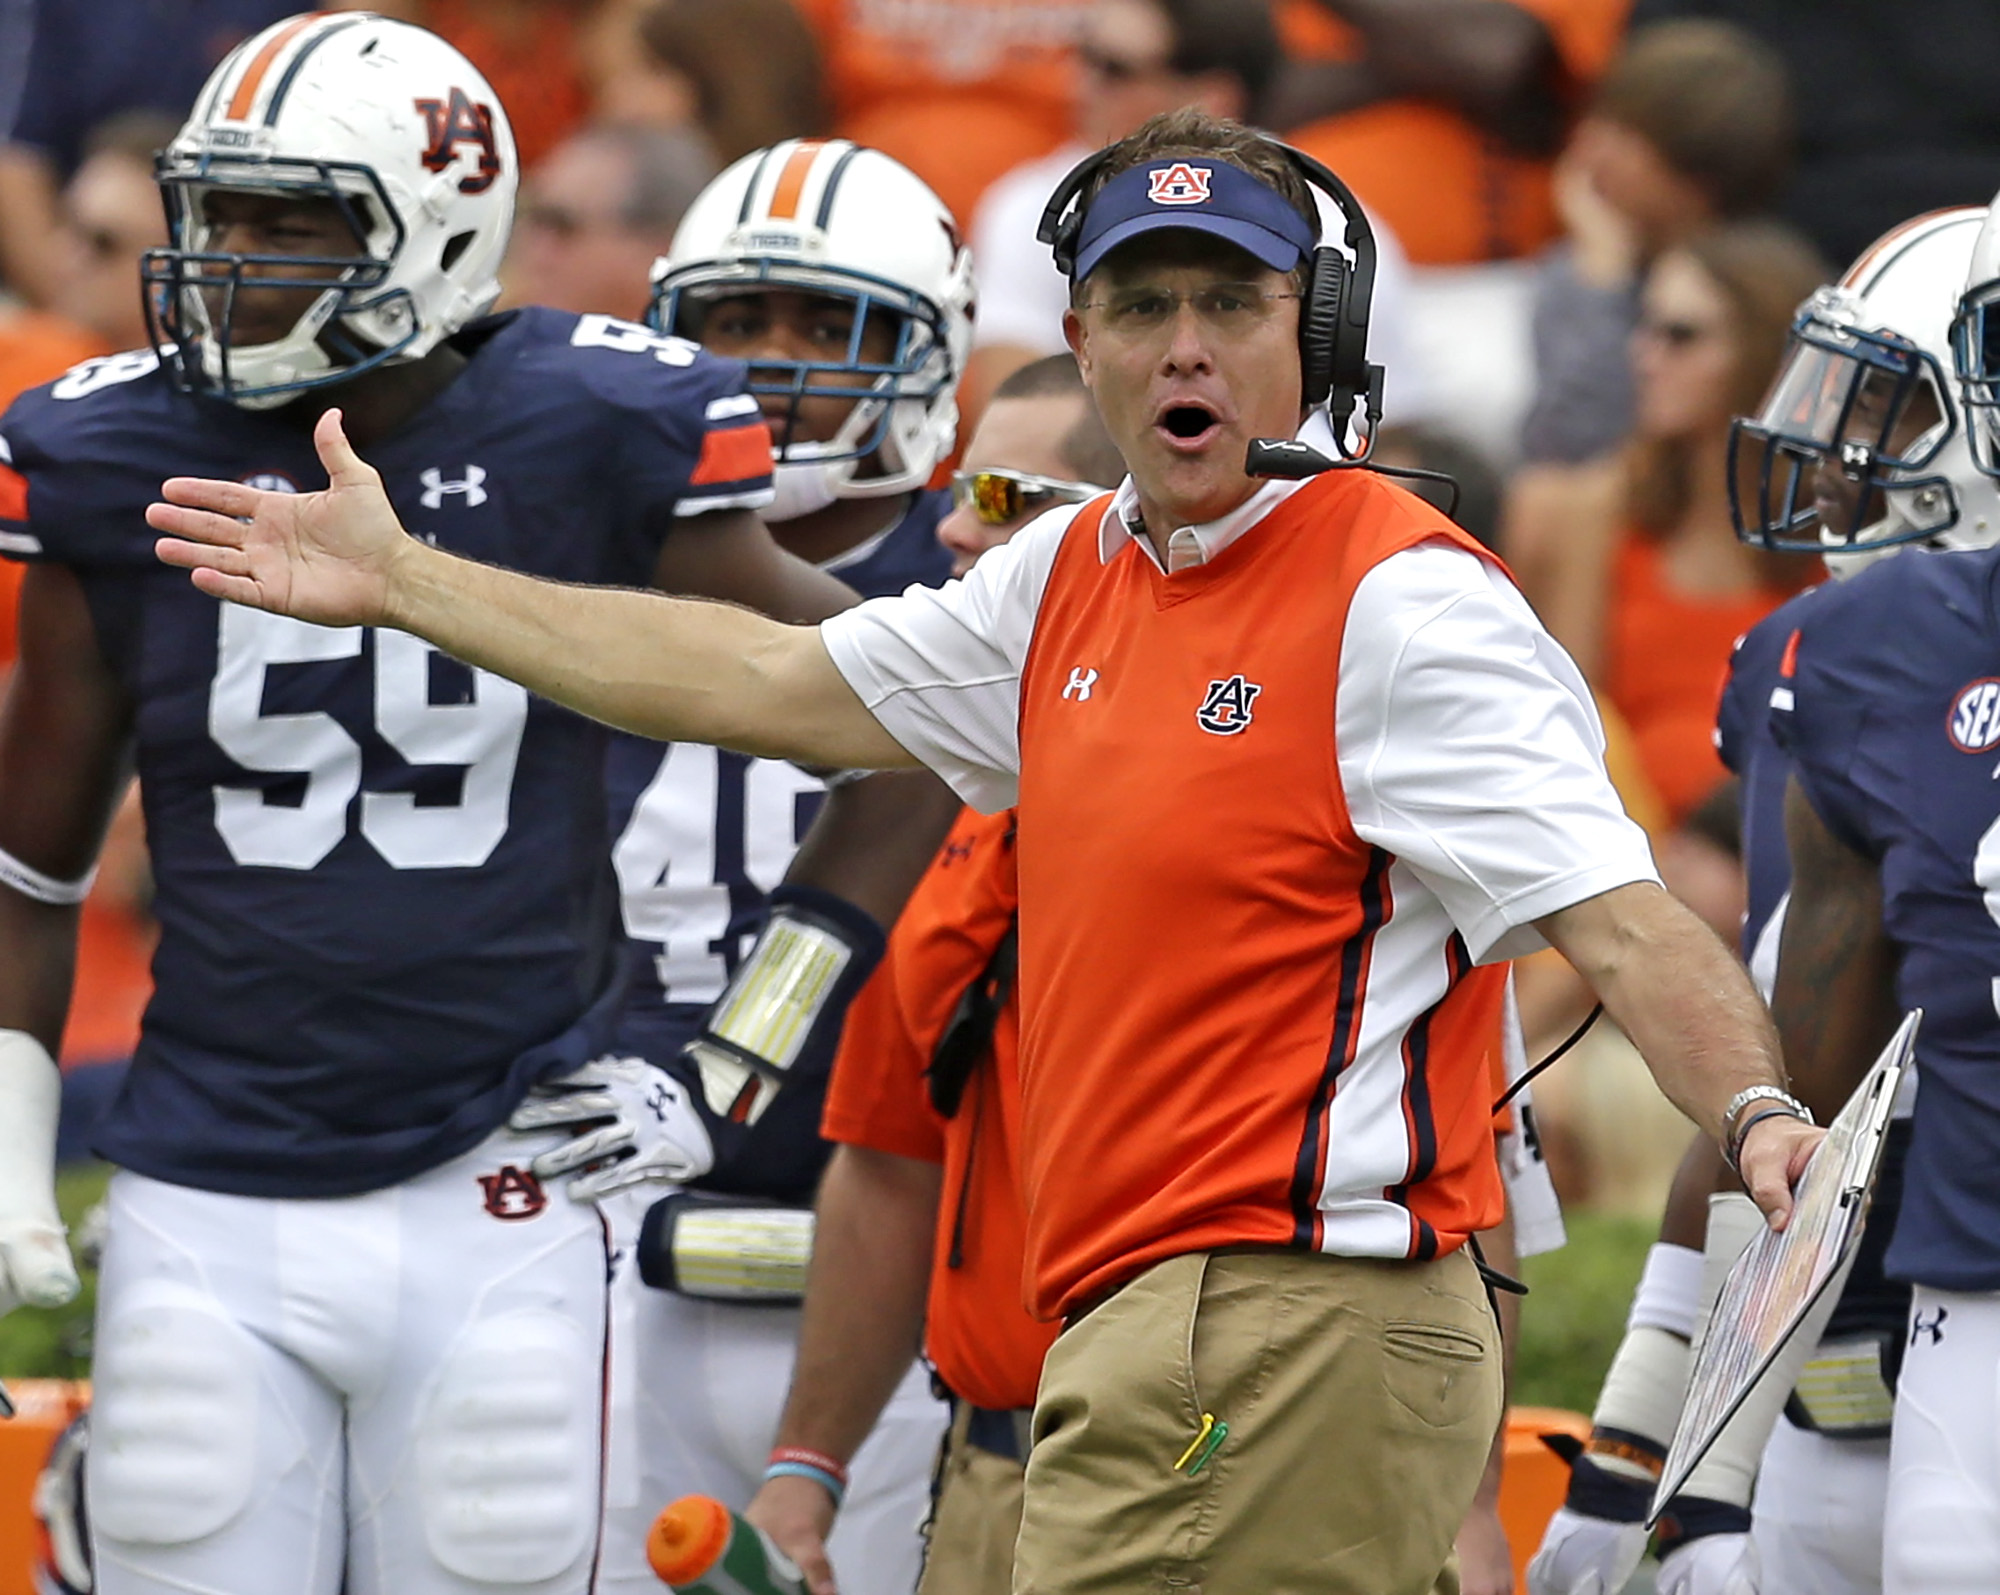 Auburn head coach Gus Malzahn reacts to a targeting call during the first half of an NCAA college football game against Jacksonville State, Saturday, Sept. 12, 2015, in Auburn, Ala. (AP Photo/Butch Dill)